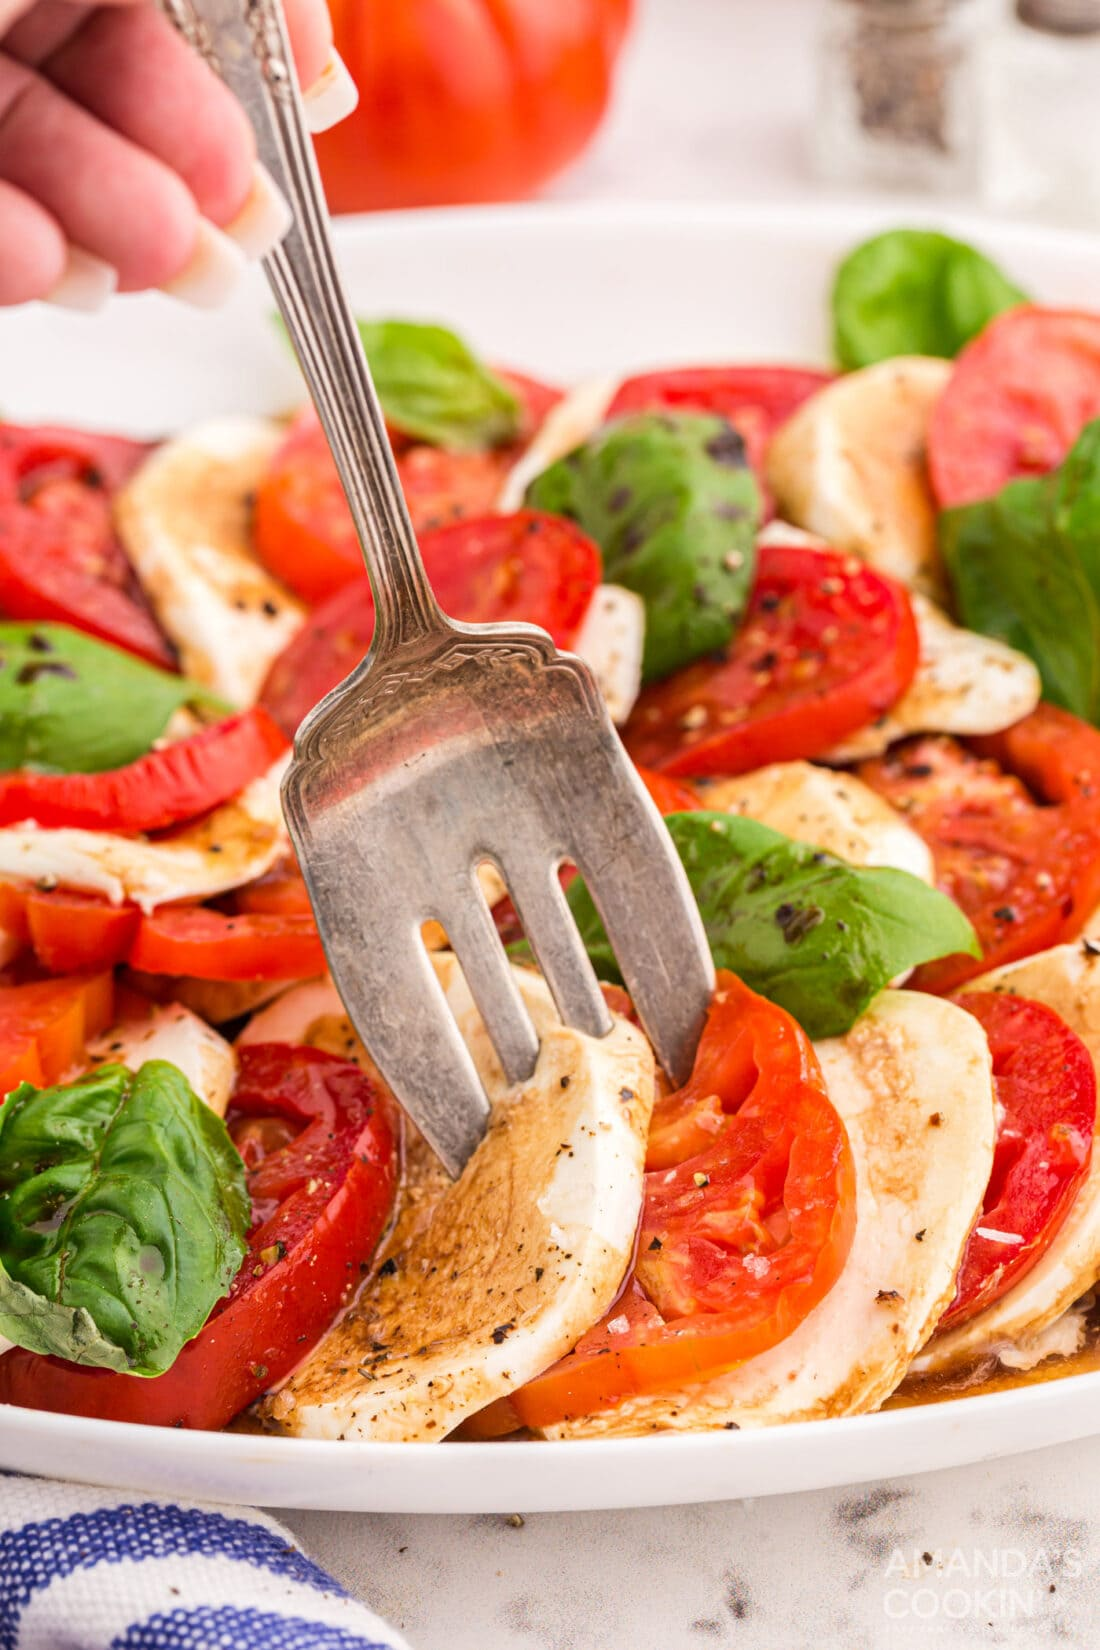 Caprese Salad with fork